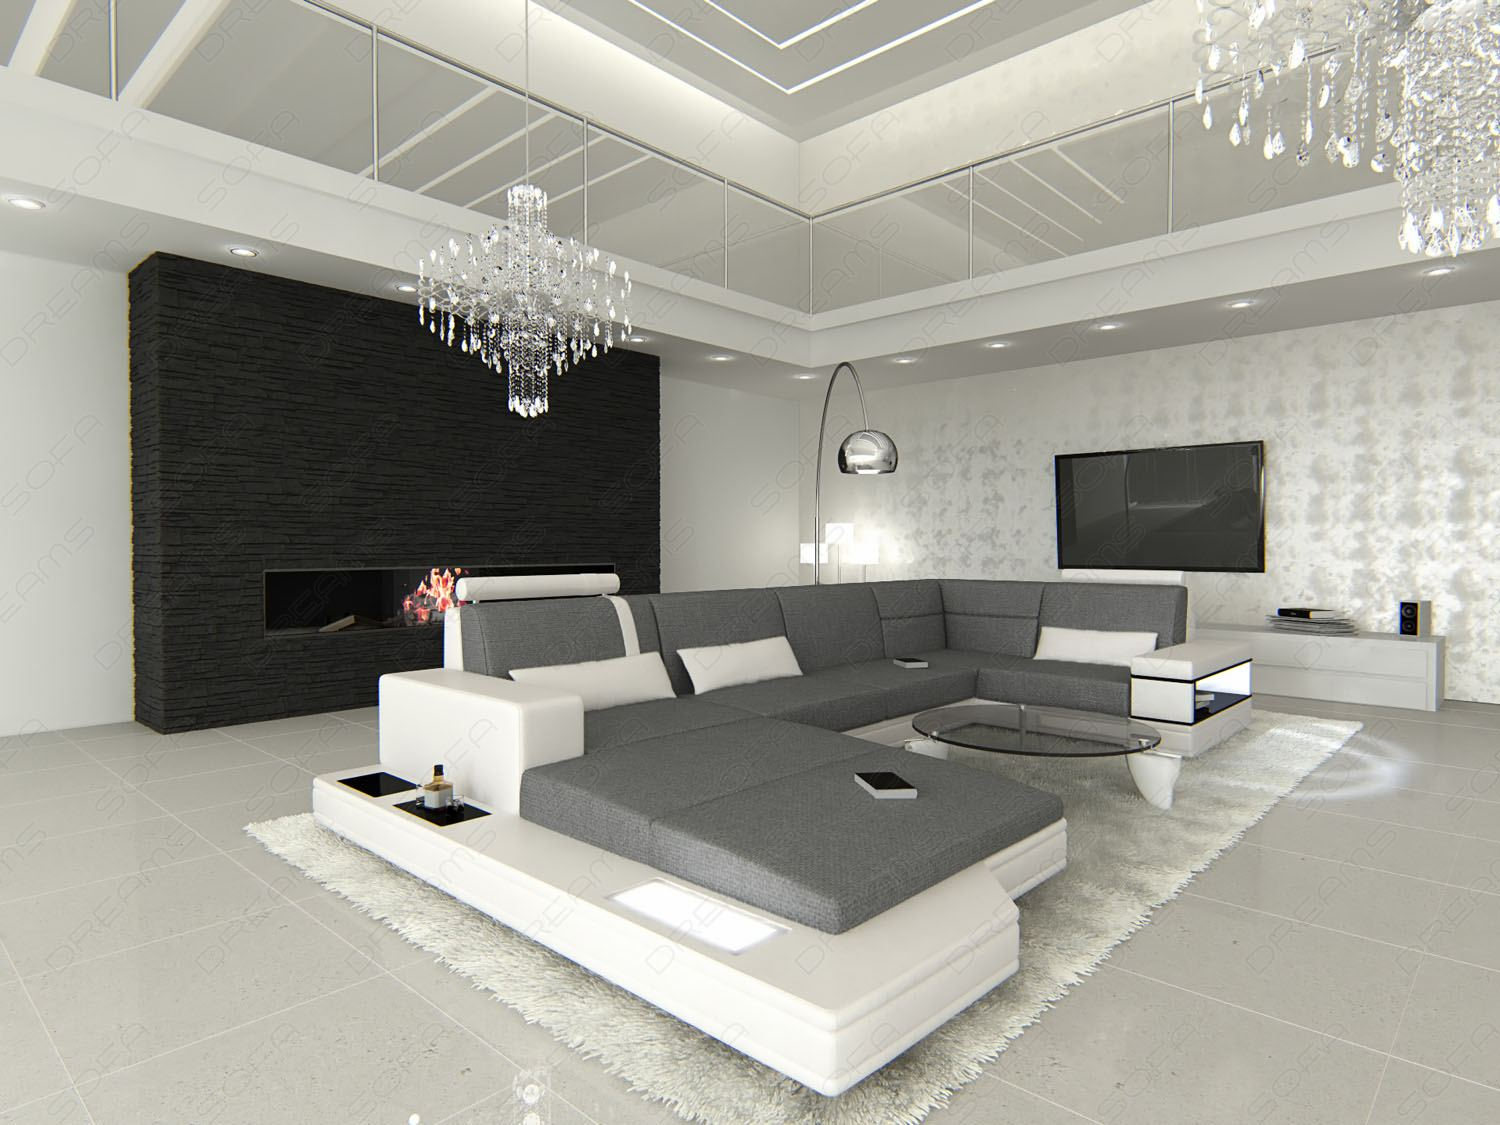 fabric sectional design sofa messana u shaped with lights. Black Bedroom Furniture Sets. Home Design Ideas